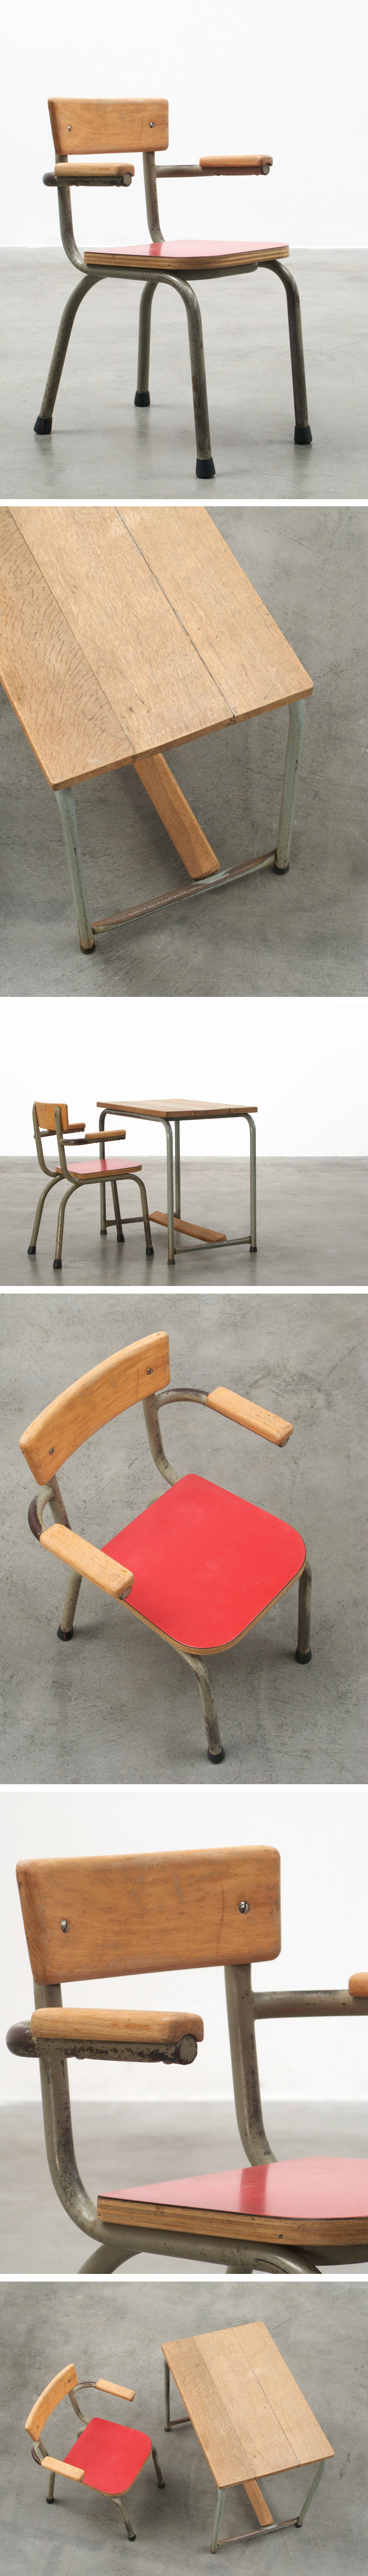 School Desk And Chair For Children Tubax Large